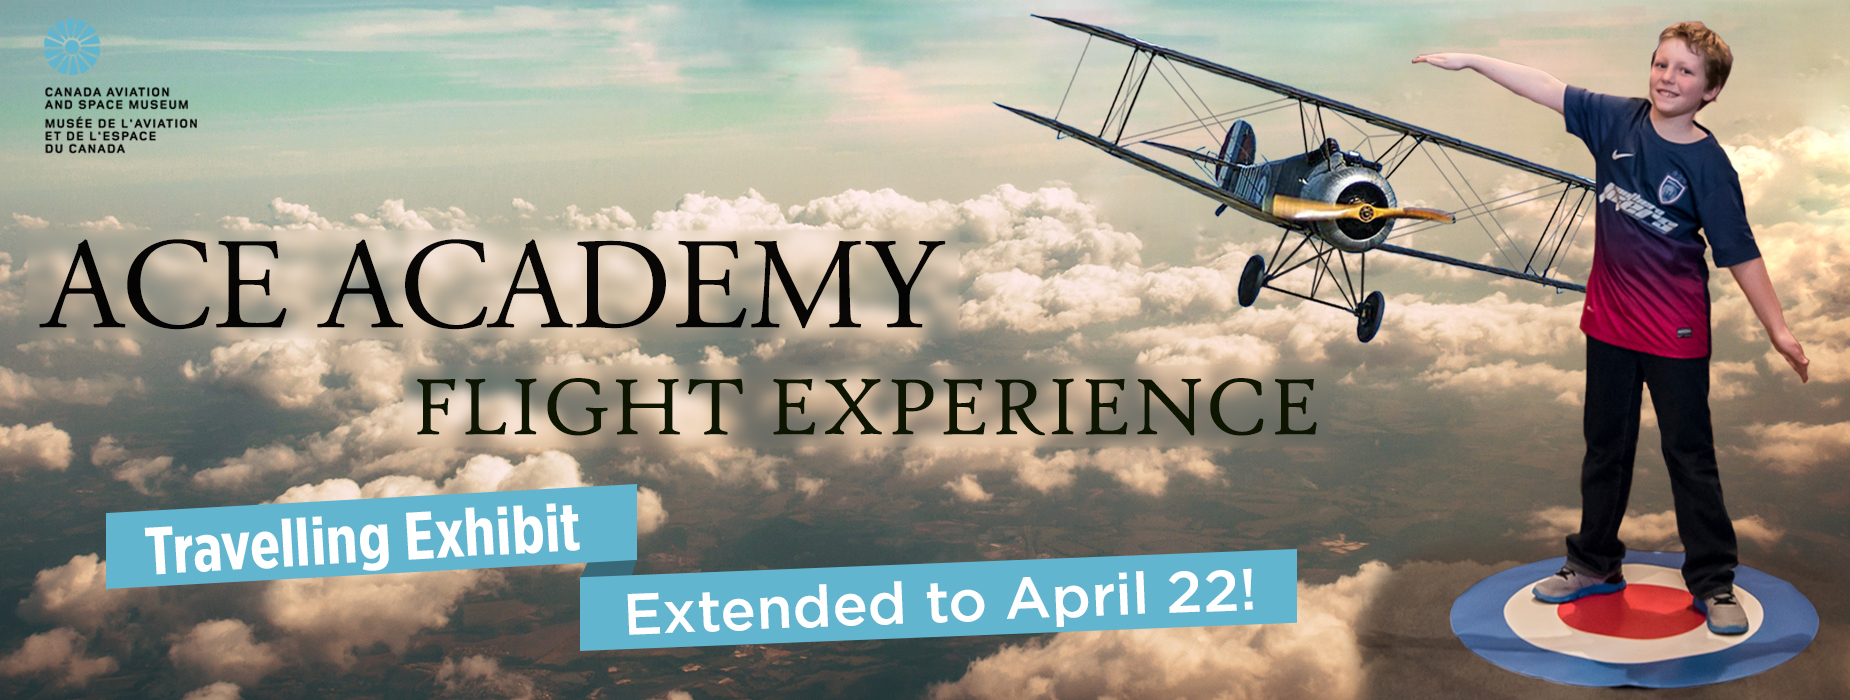 Poster for - Ace Academy Flight Experience